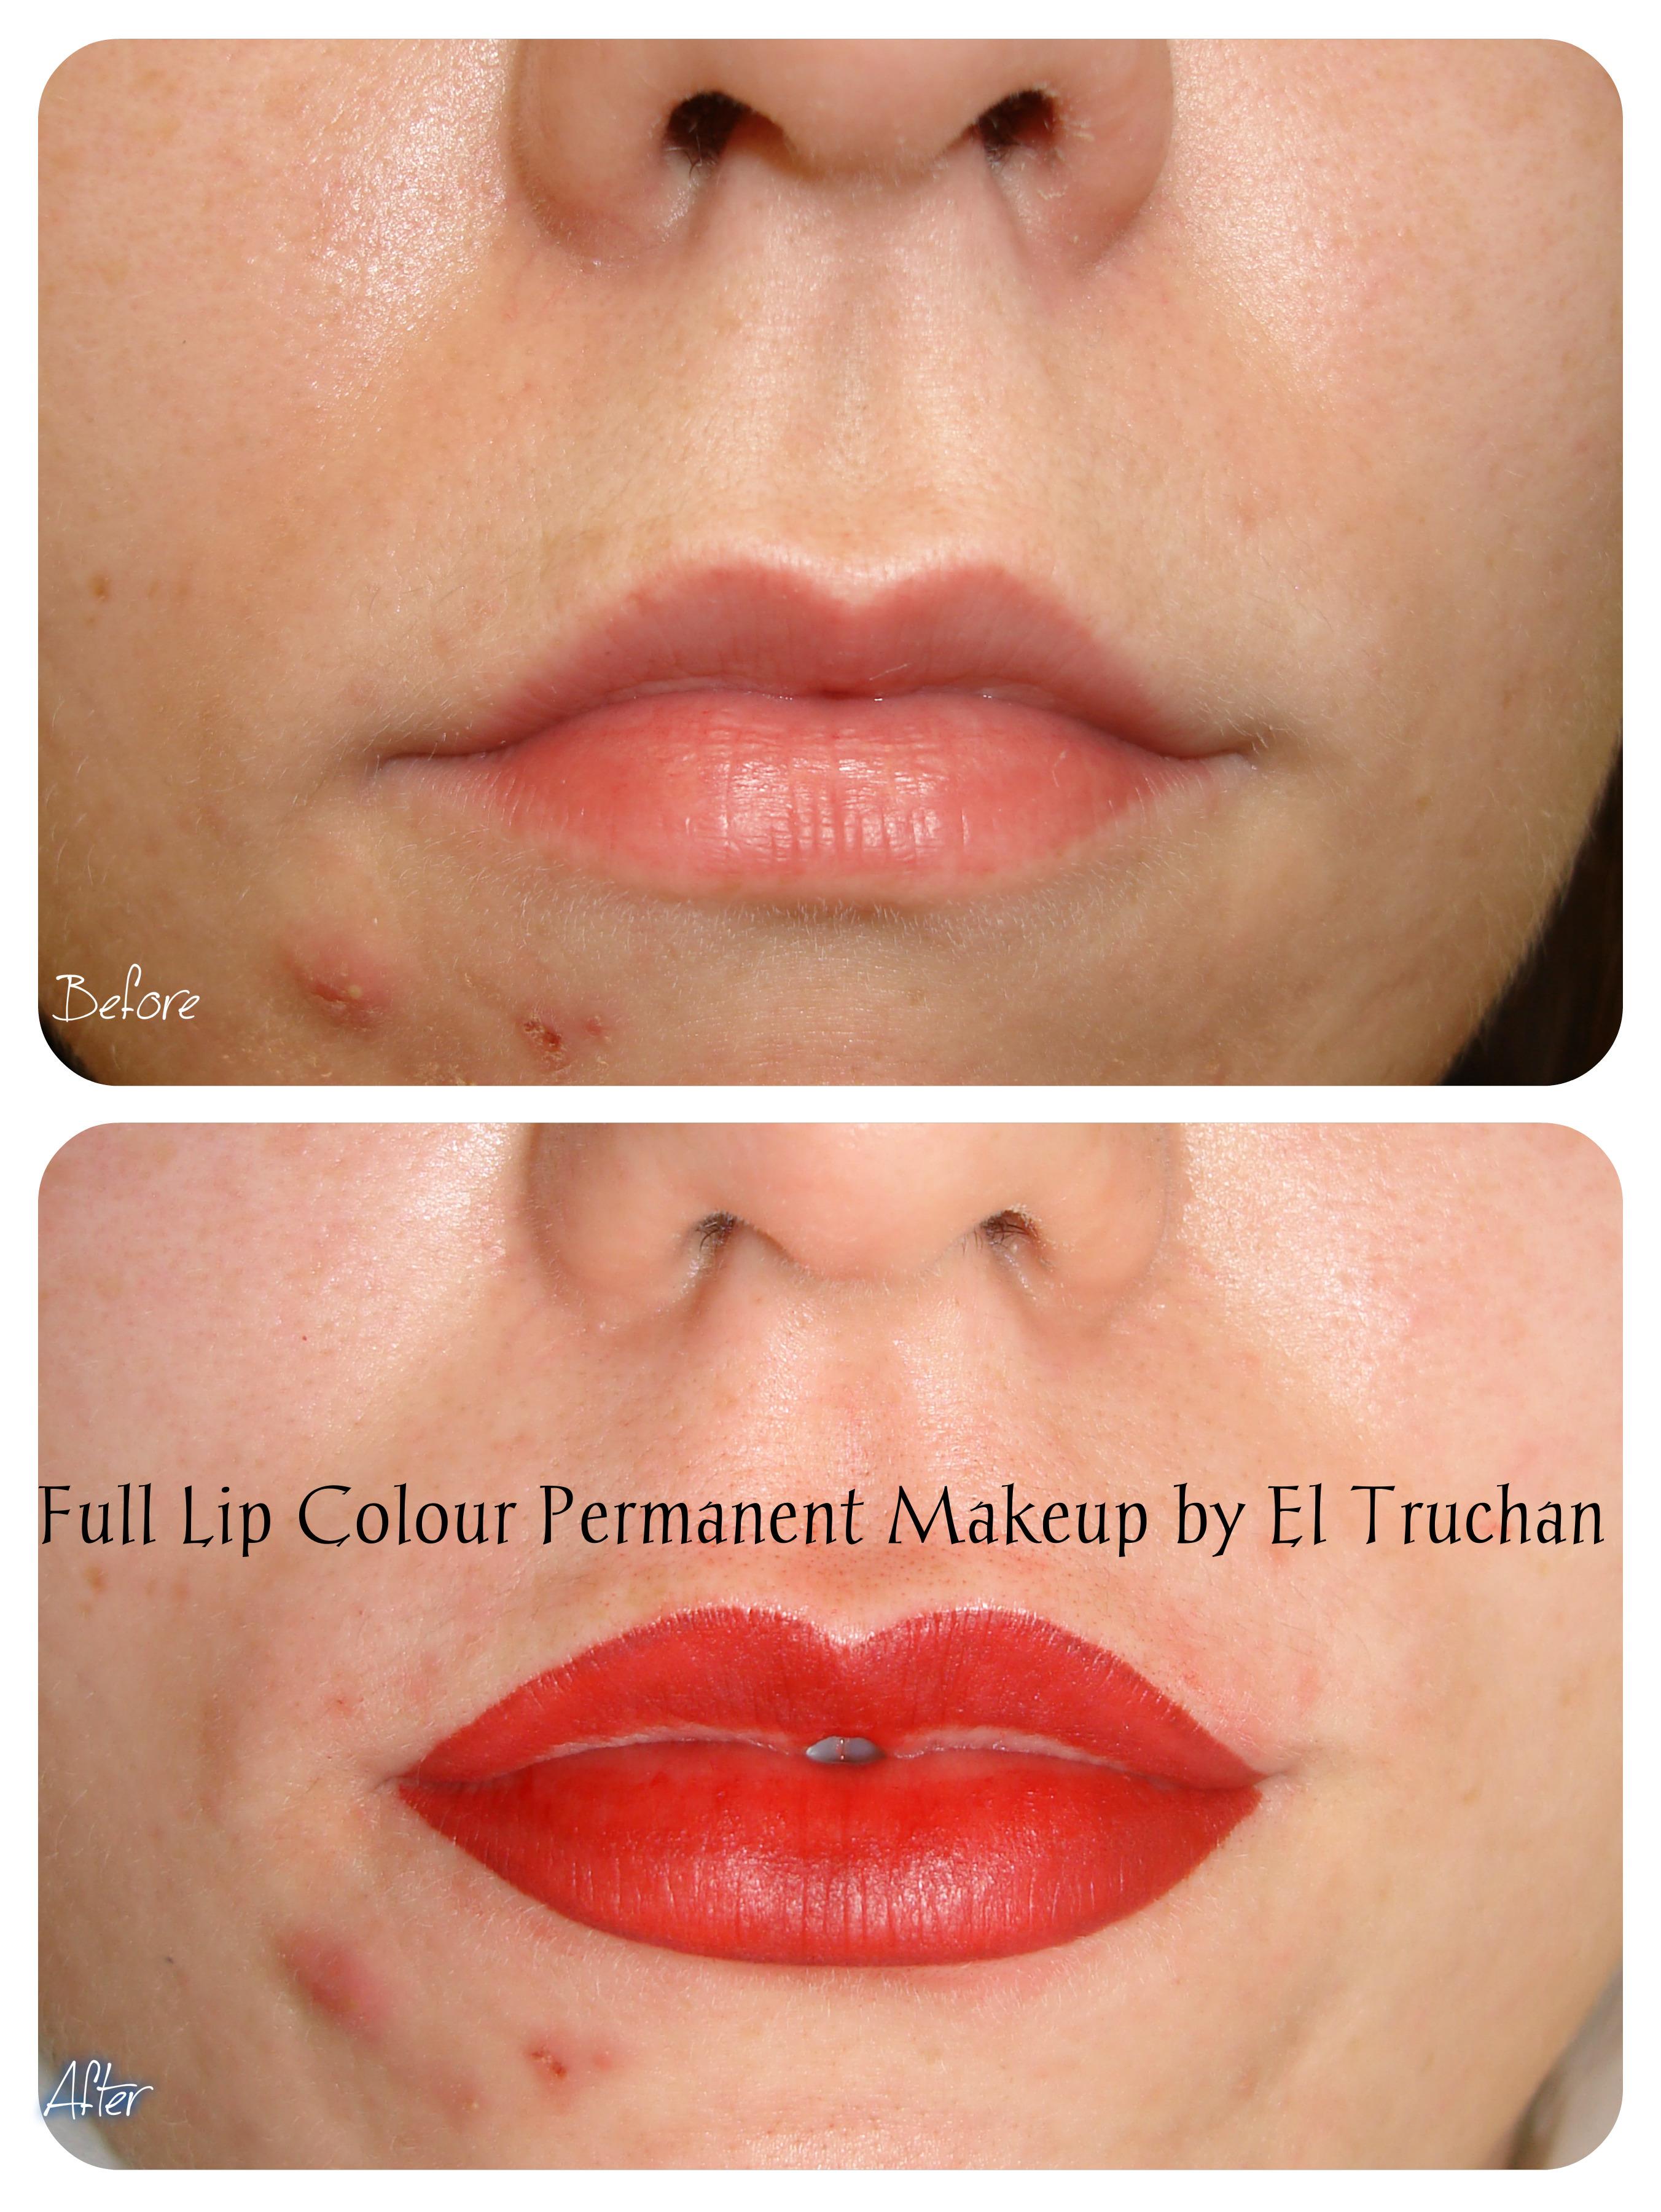 Permanent Makeup Full Lip Colour by El Truchan